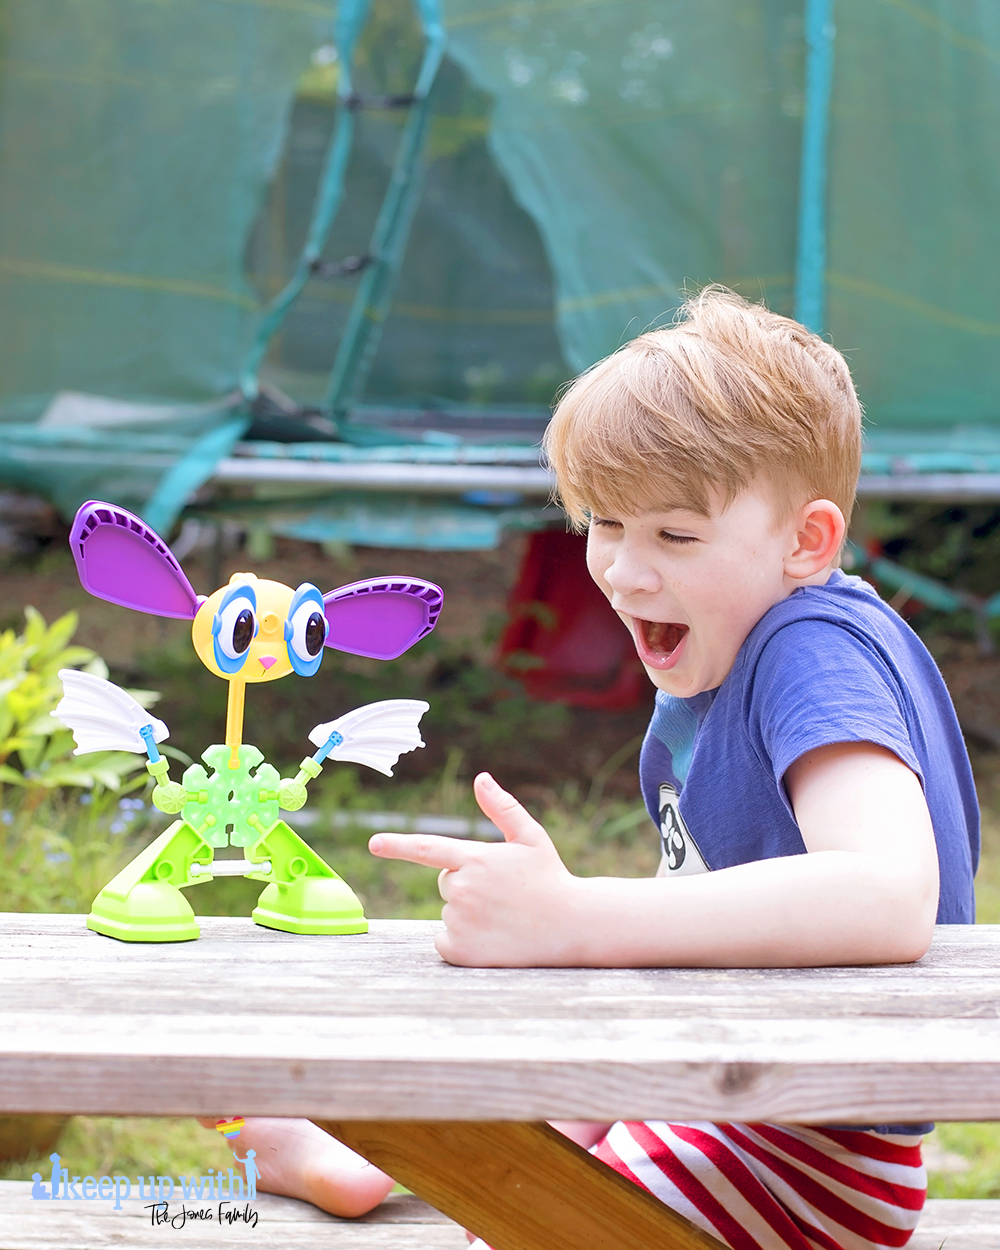 Image shows a boy with blond hair sat at a picnic table, pointing at a toy in front of him.  On the wooden picnic table in front of them is a rabbit like creature, which is made from pieces of the Kid K'nex Budding Builders construction toys box from Basic Fun UK.  By Keep Up With The Jones Family.